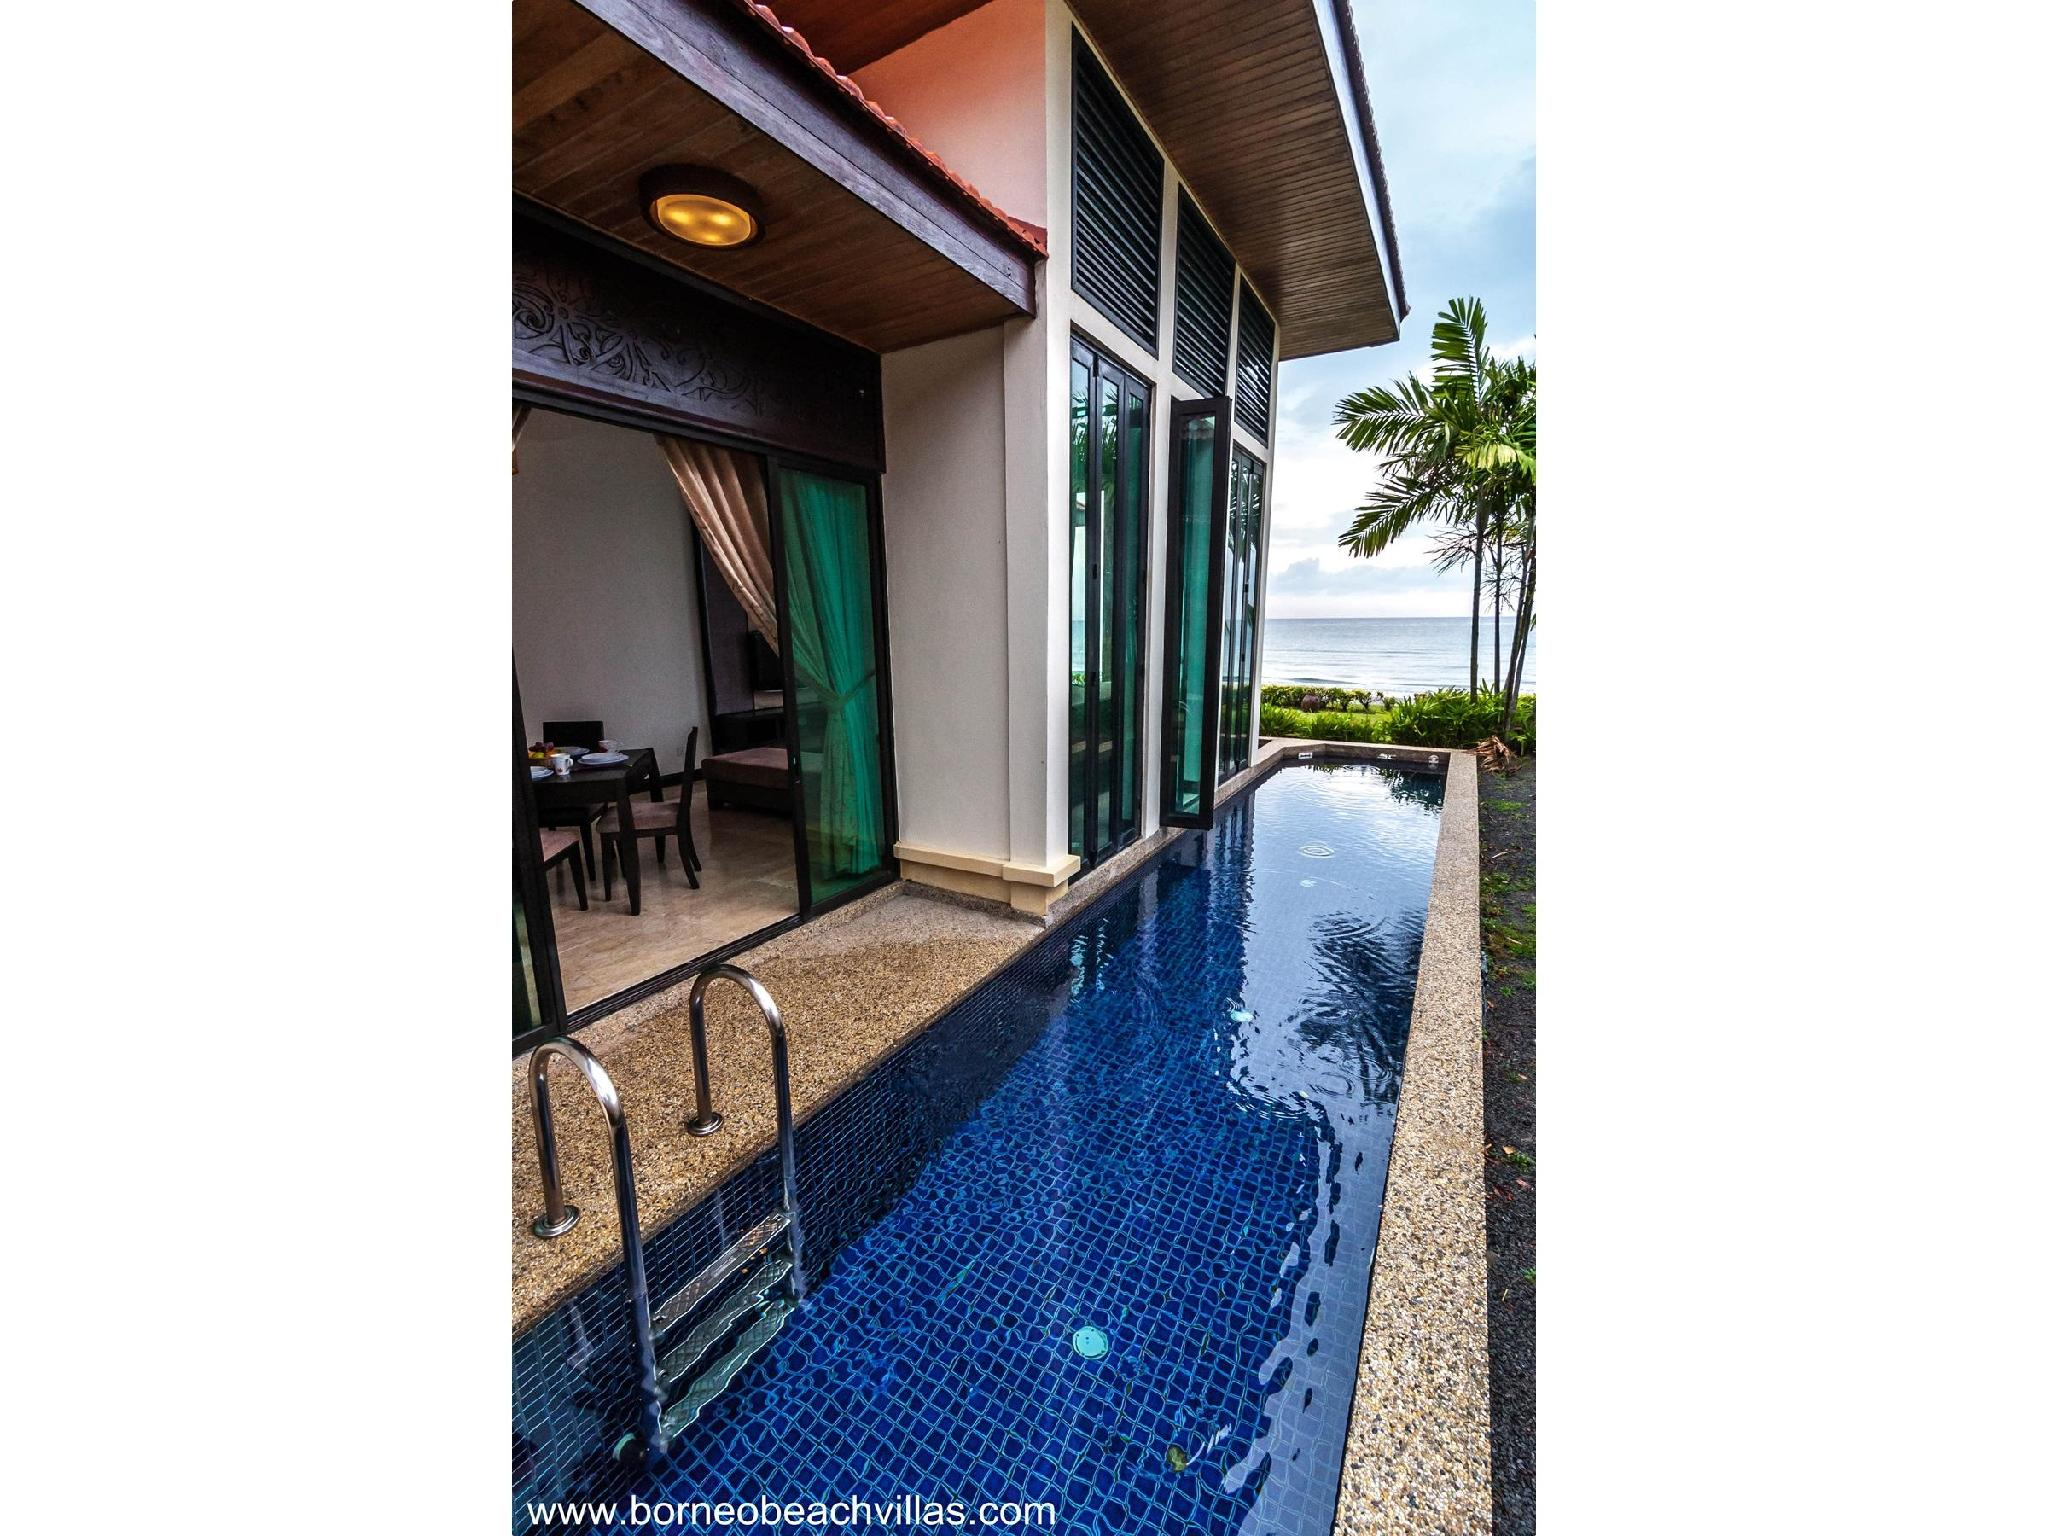 Borneo Beach Villas7